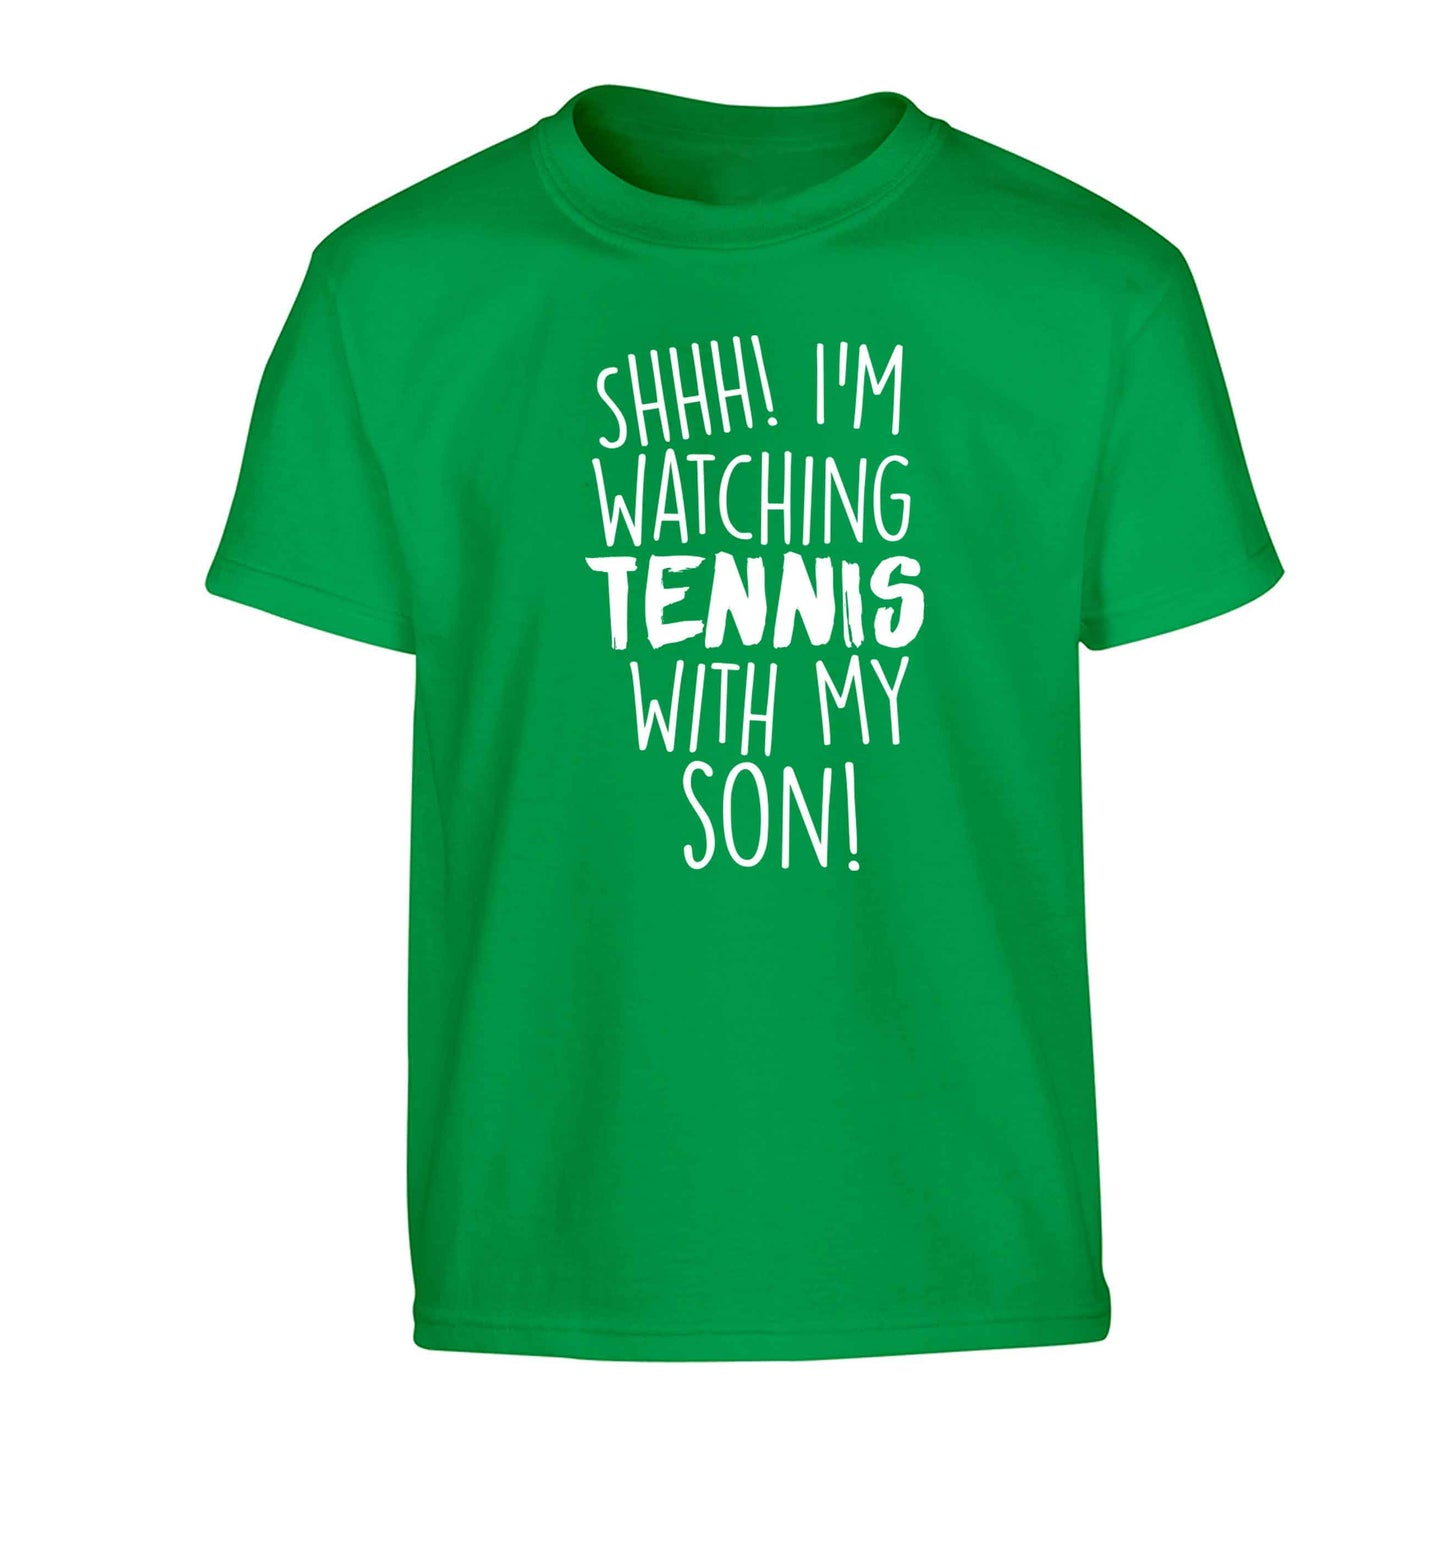 Shh! I'm watching tennis with my son! Children's green Tshirt 12-13 Years